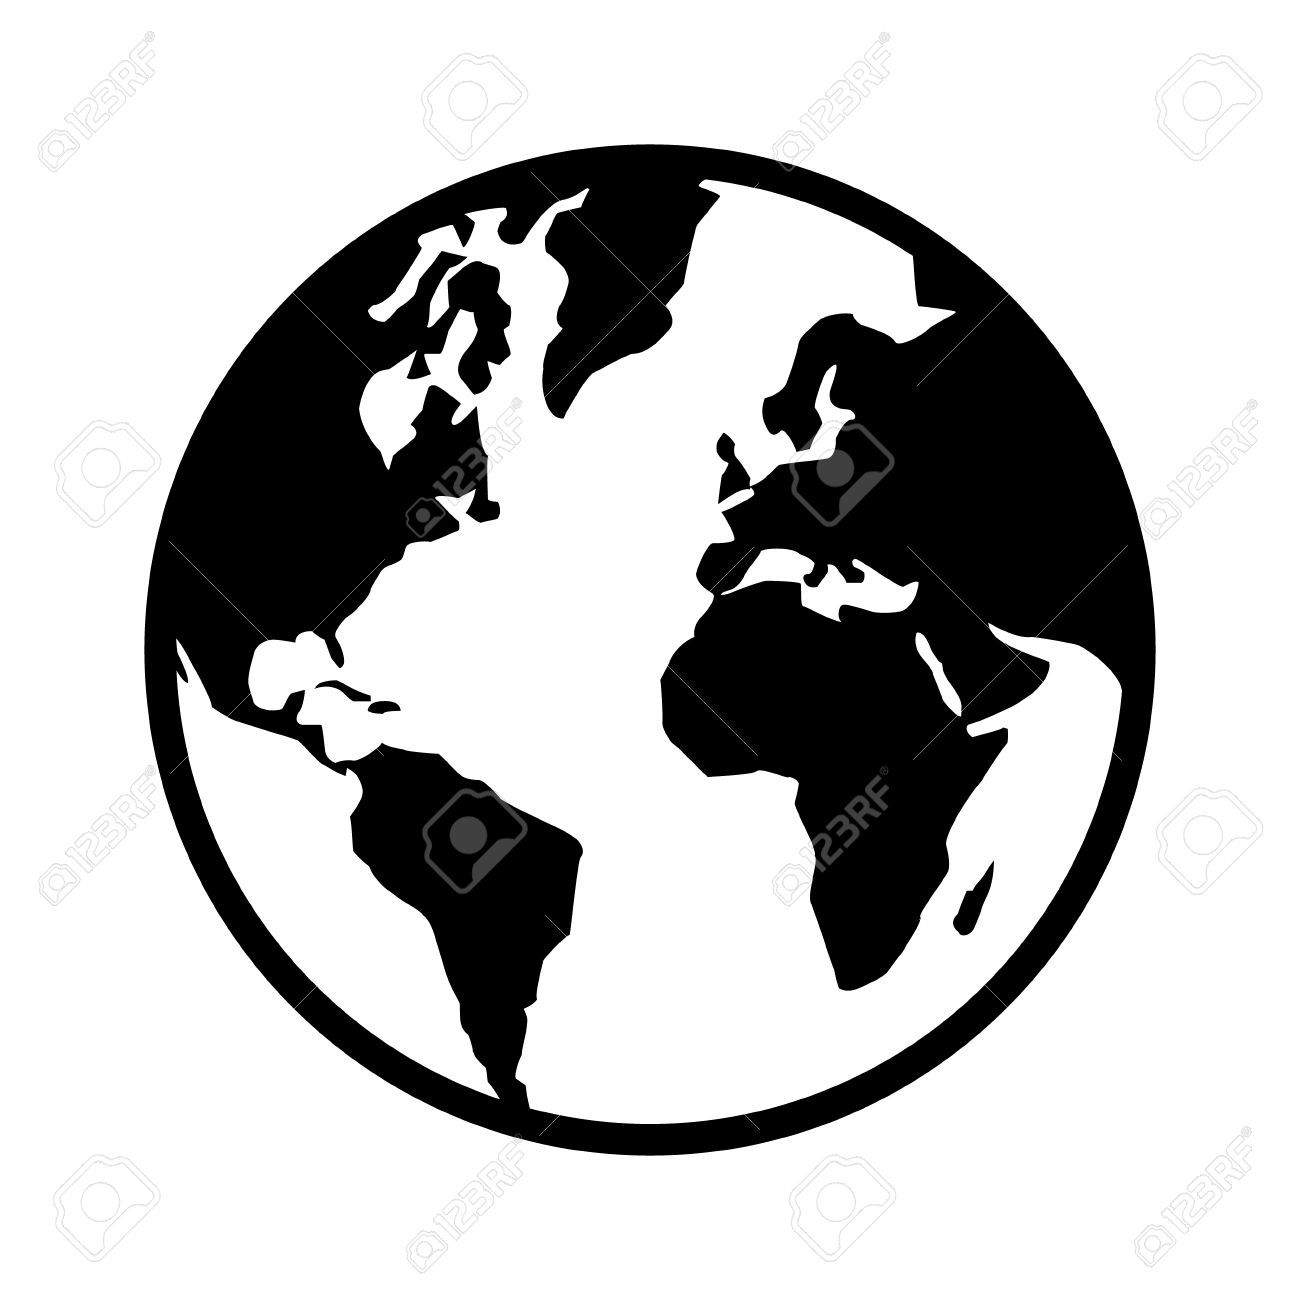 37+ Globe clipart black and white vector ideas in 2021